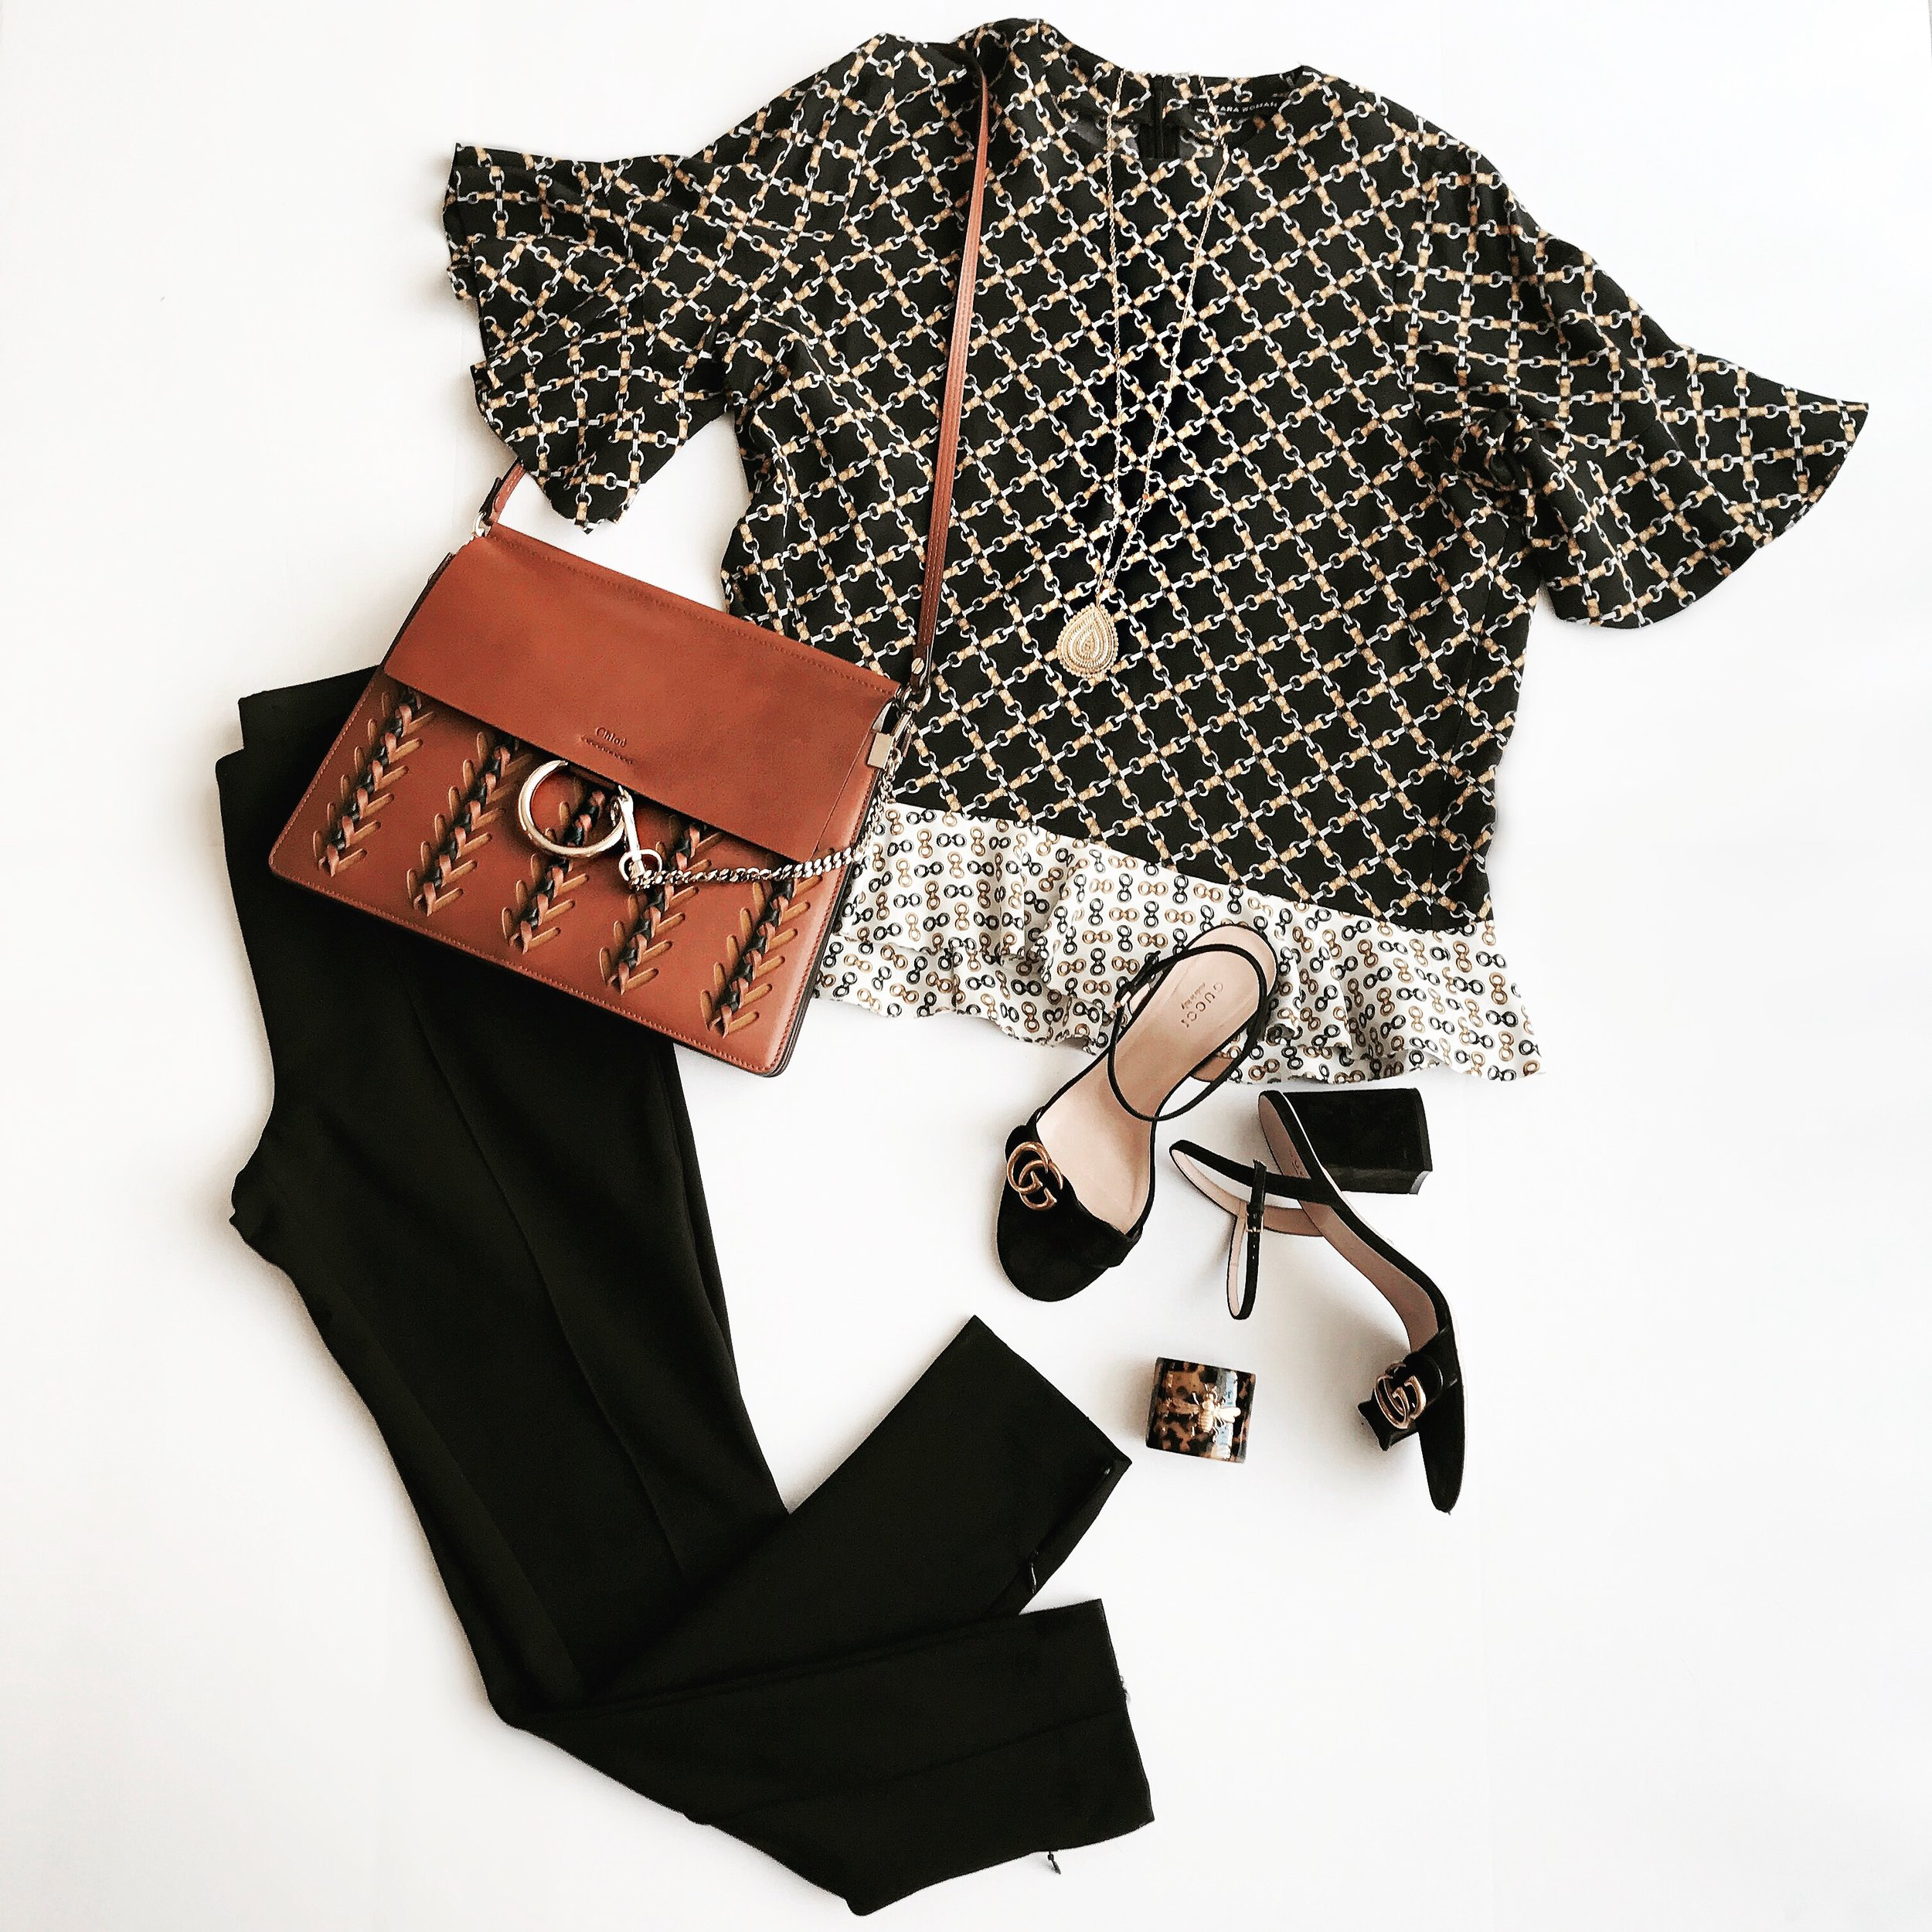 Top  (sold out, but love this one too), P ants , S hoes ,  Bag  (similar),  Necklace